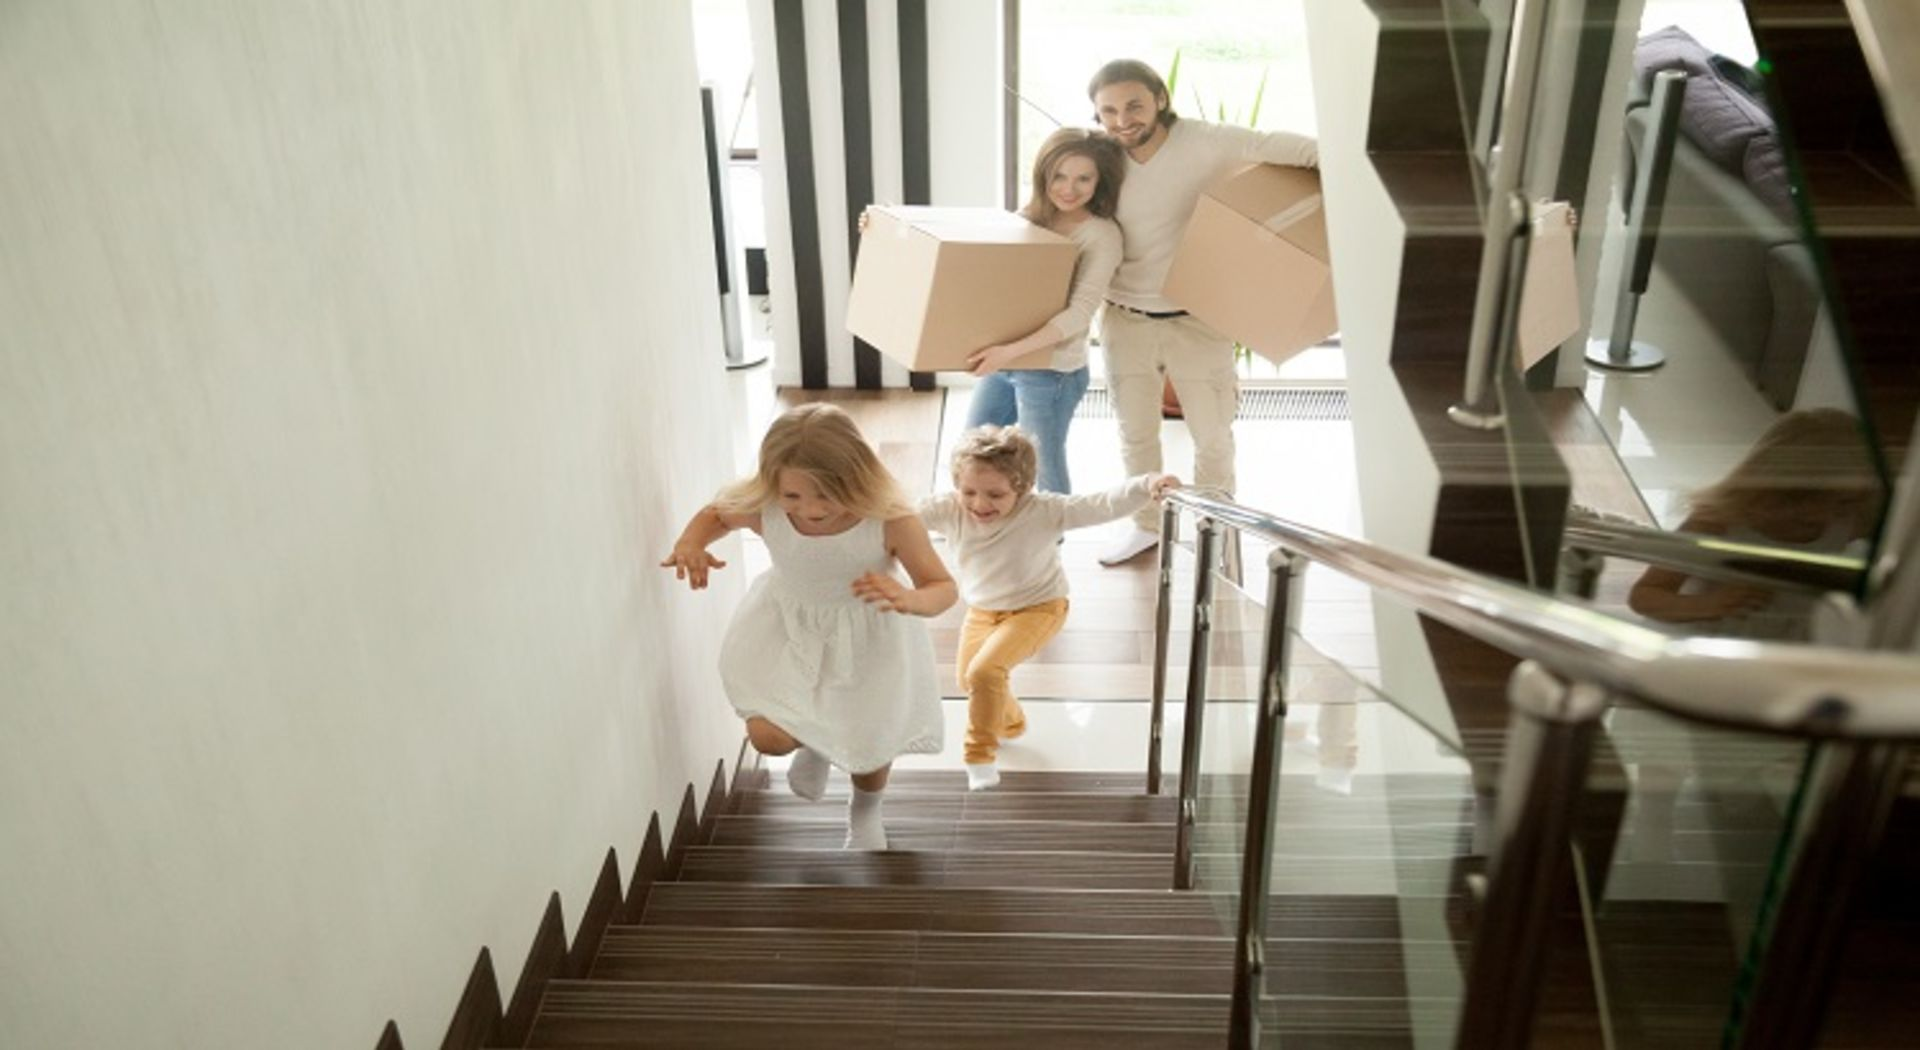 4 REAL Reasons Why We Buy a Home